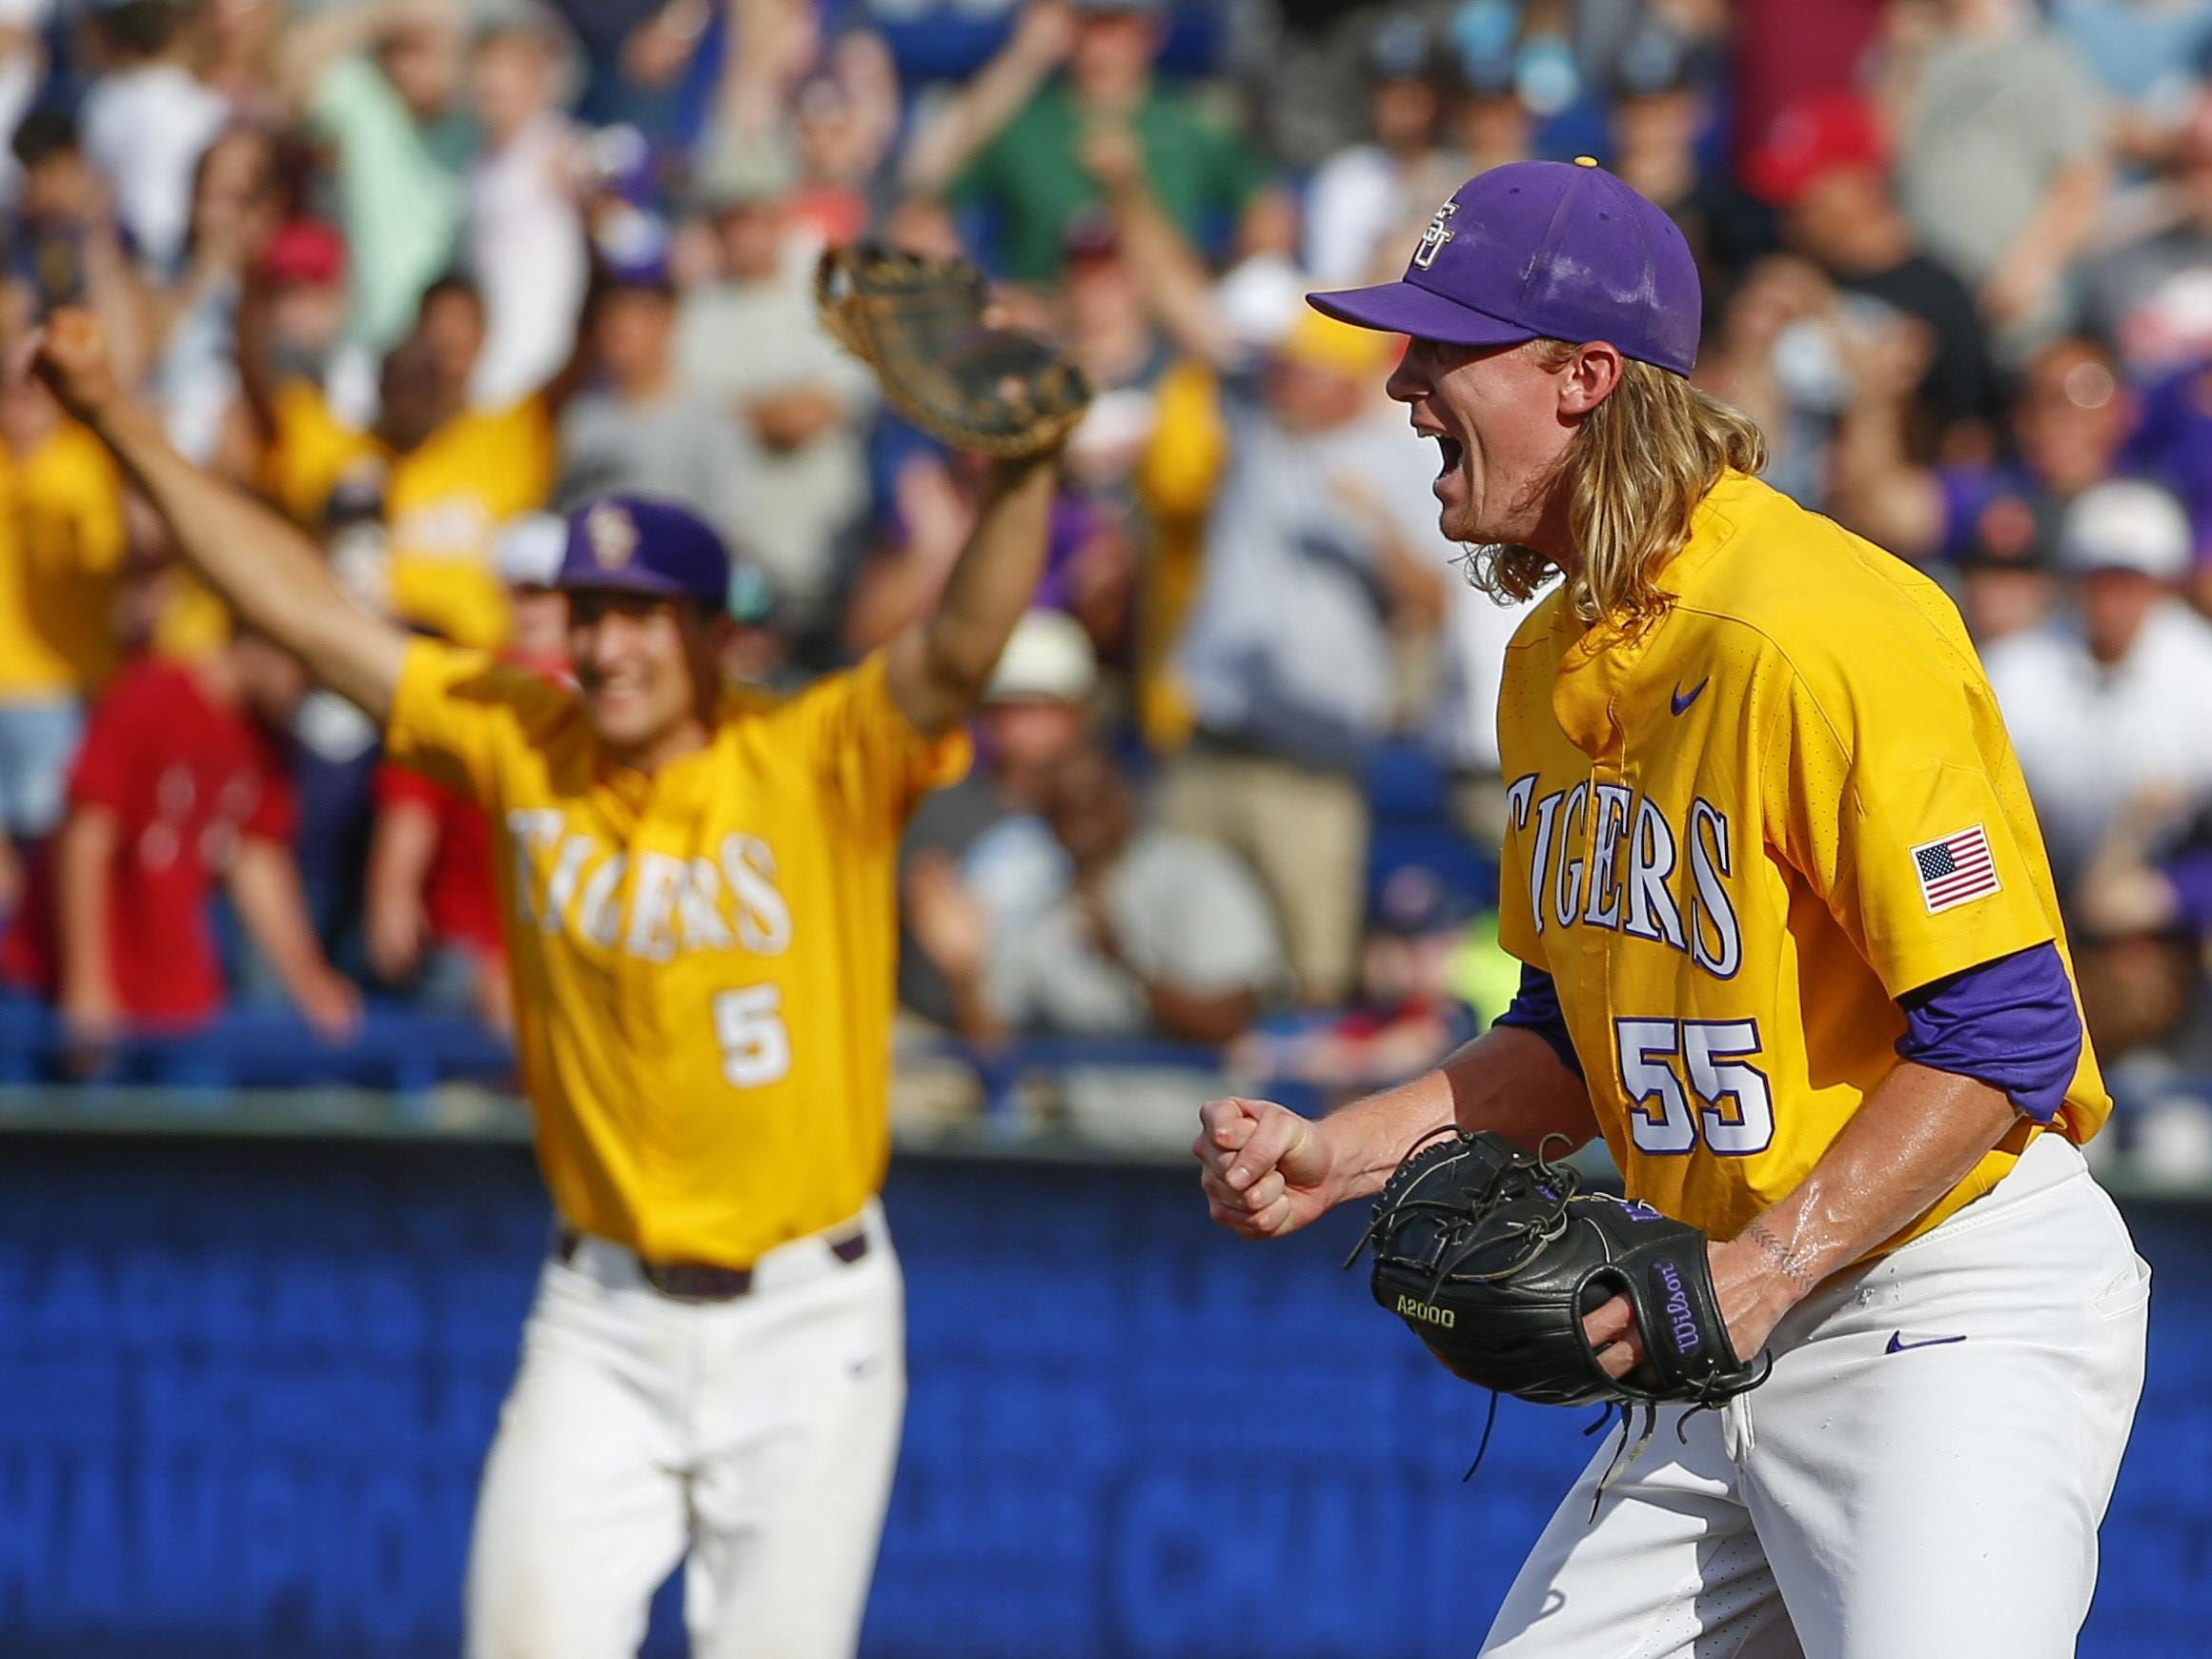 LSU pitcher Hunter Newman (55) reacts after the last out to defeat Arkansas in the ninth inning of the championship game in the Southeastern Conference Tournament title.